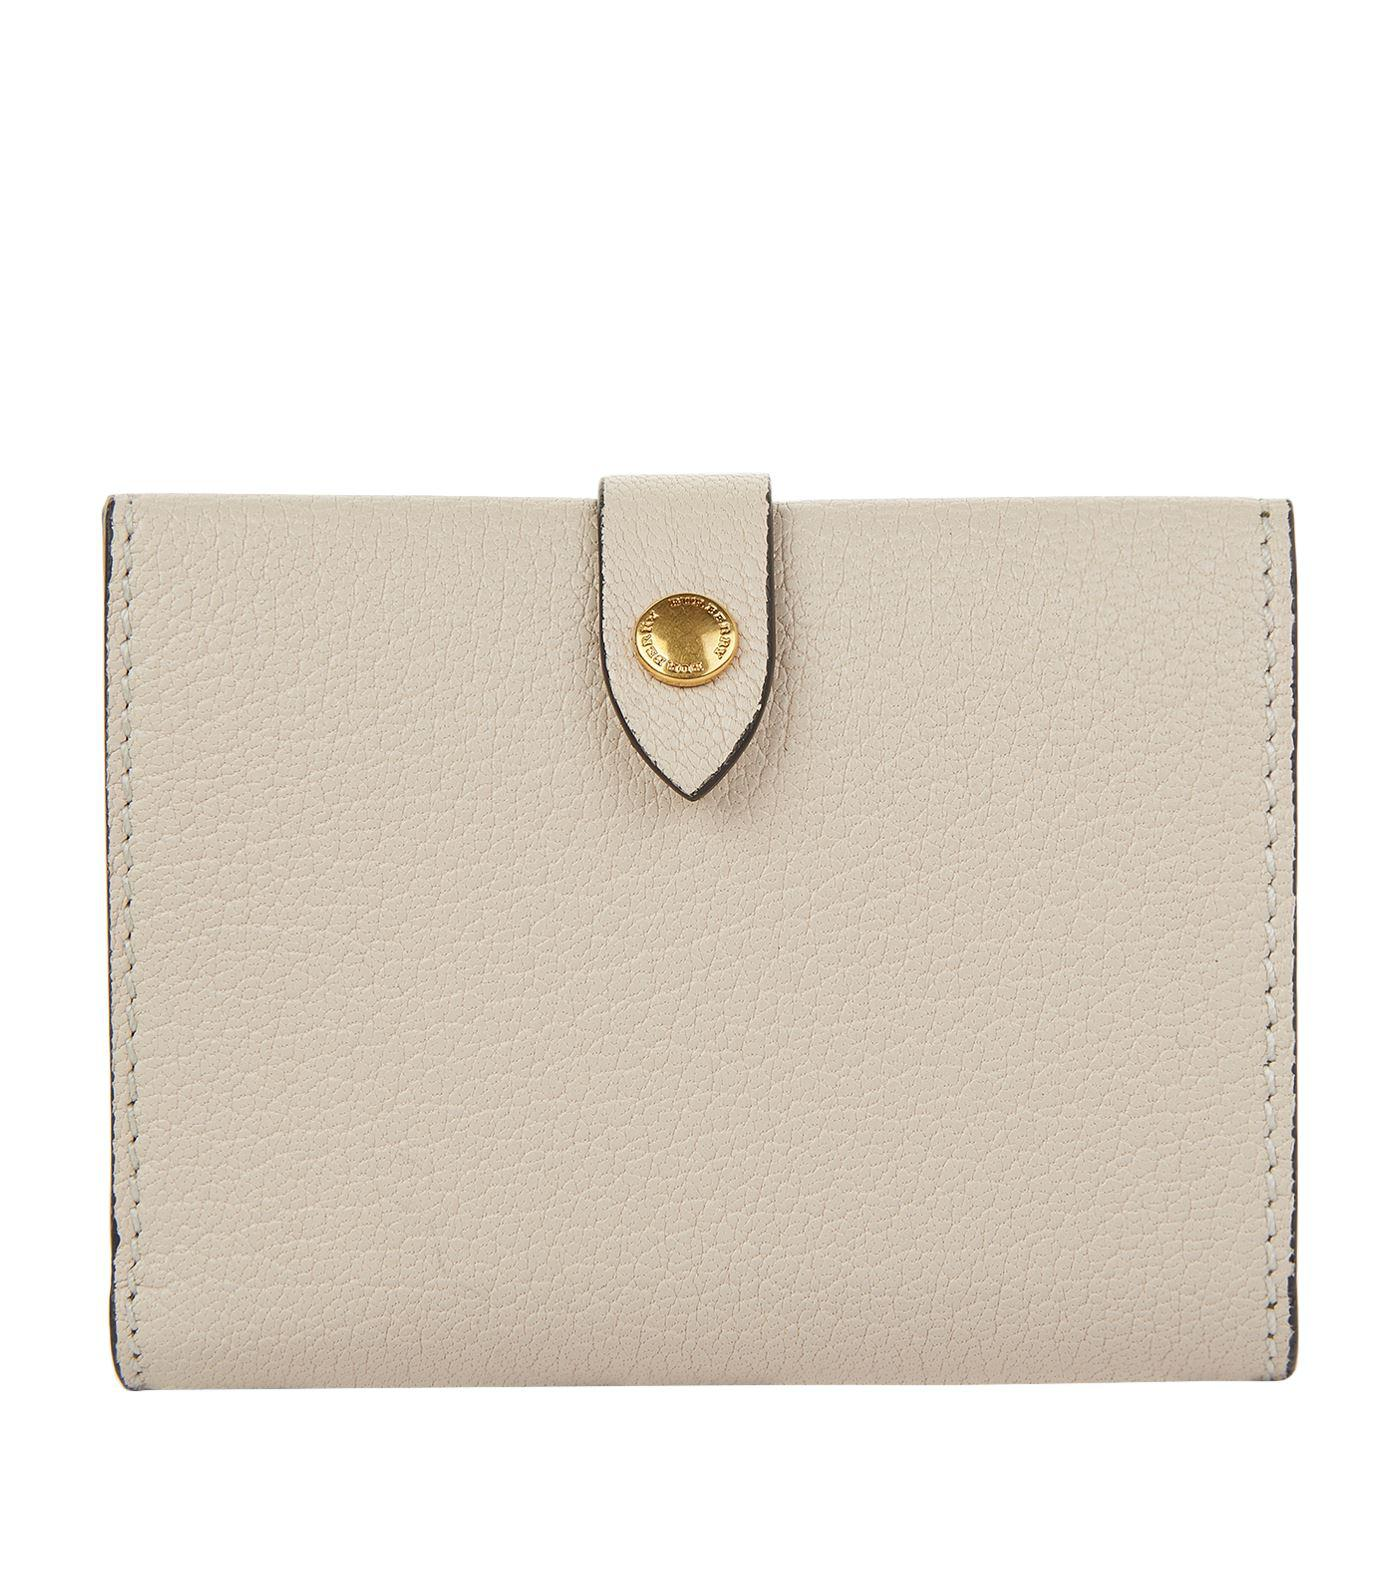 ebee63283afa Lyst - Burberry Grained Harlow Wallet in Natural